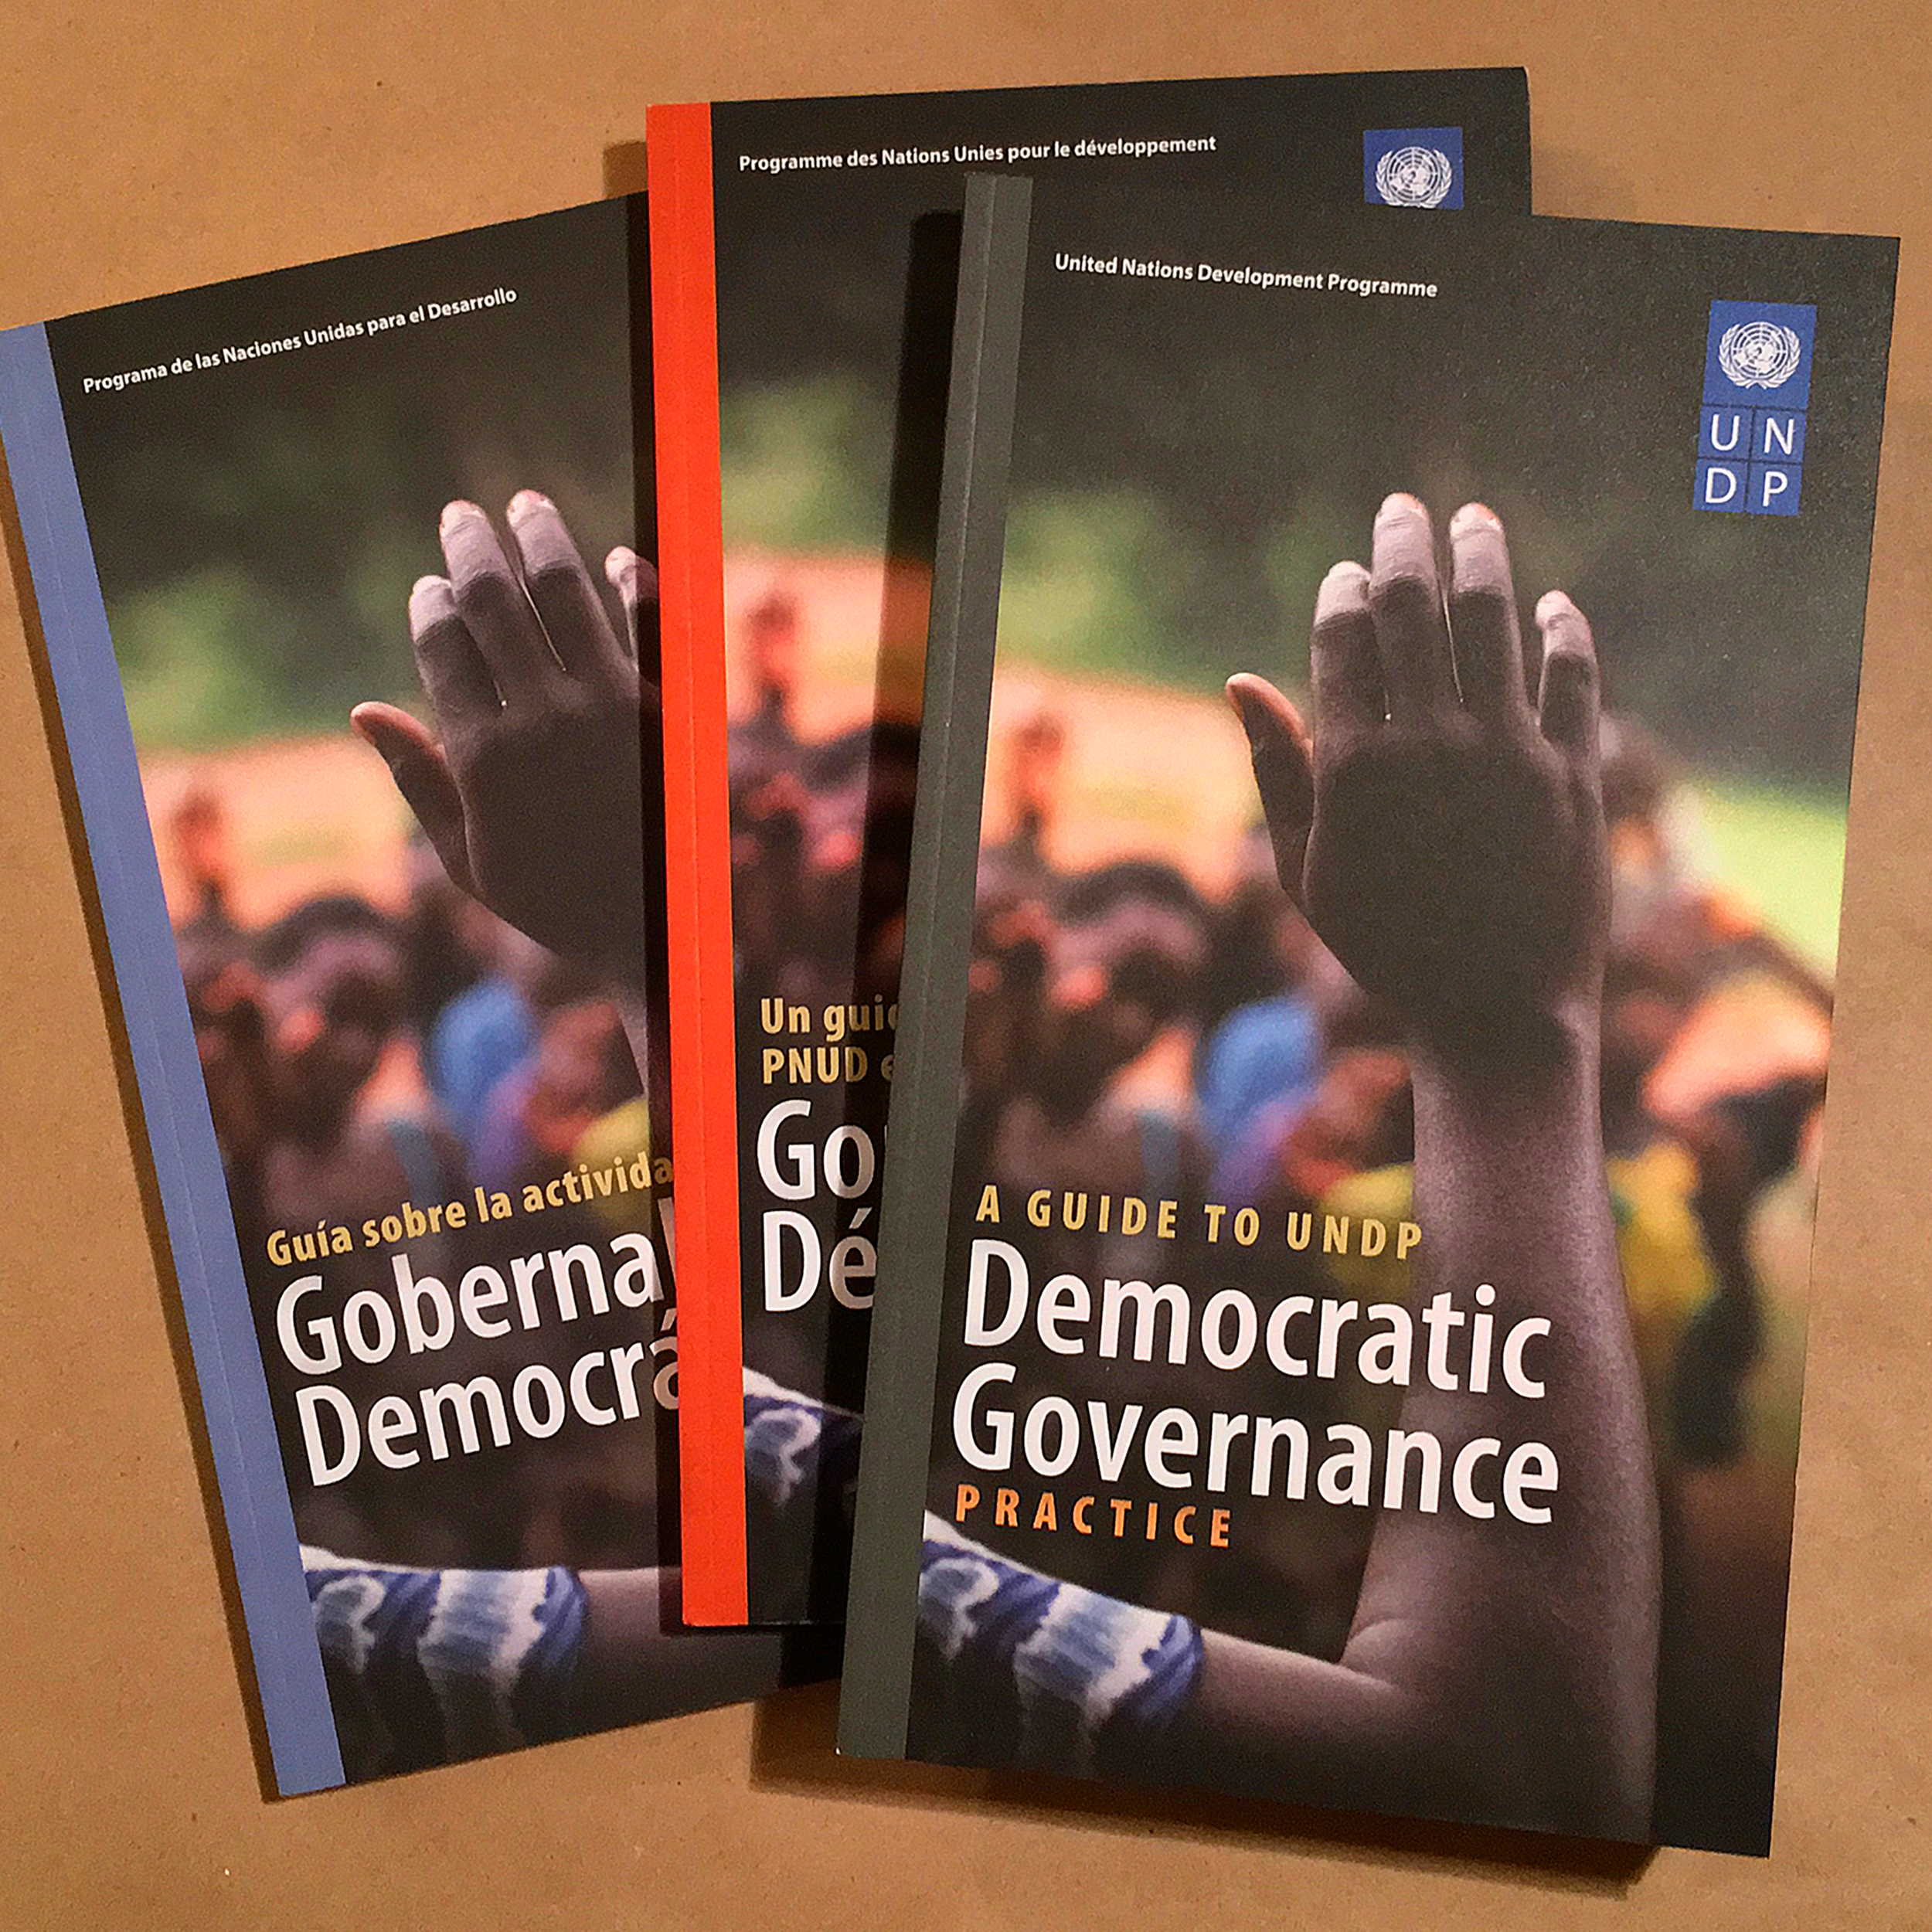 Guide to Democratic Governance   From UNDP's Oslo office, these +100-page reports provided an in-depth look into the critical work of Democratic Governance in developing countries. Designed and produced in English, French, and Spanish.